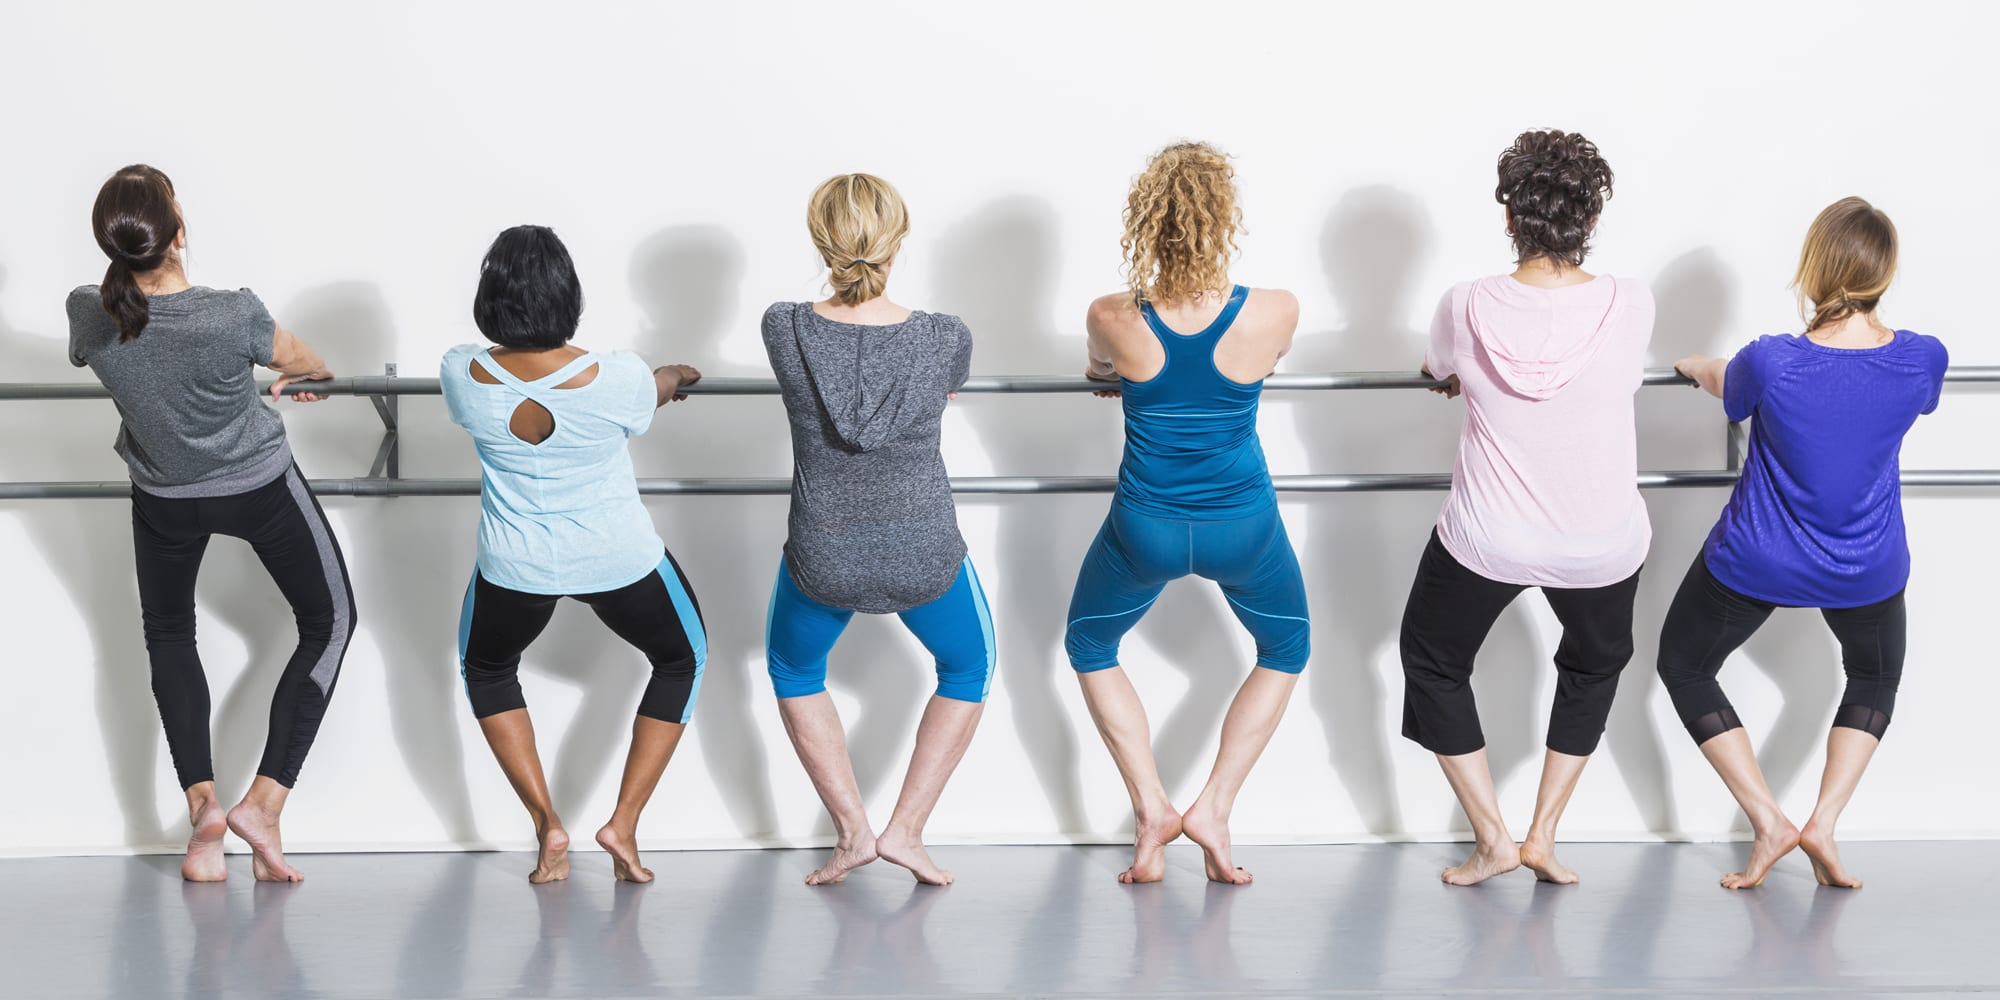 What It's Like to Take a Barre Class